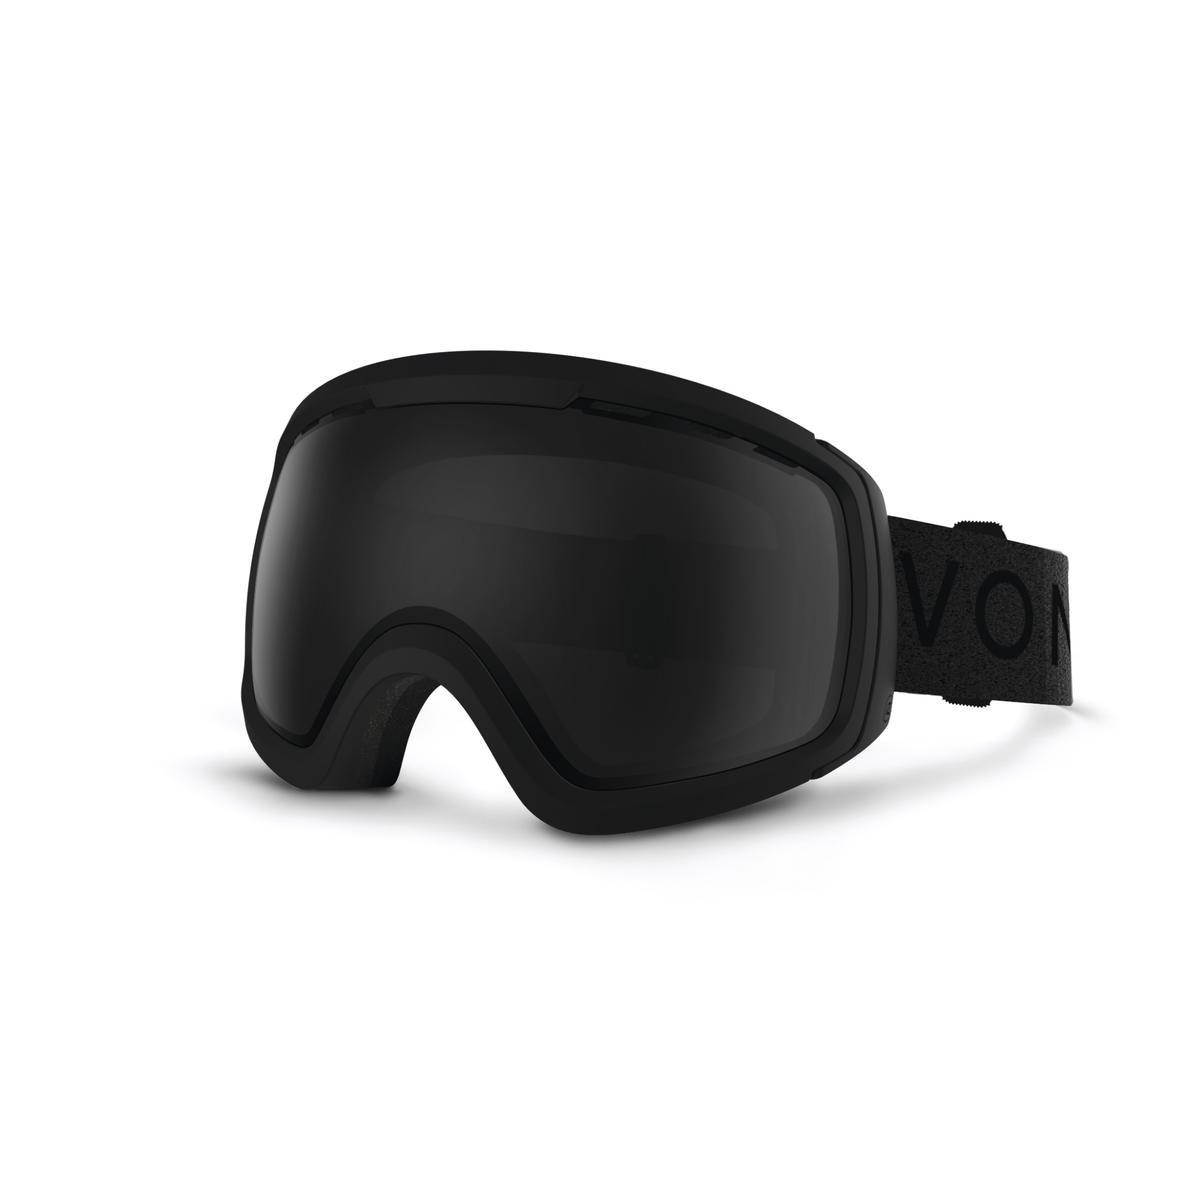 VonZipper Freenom NLS Men's Snow Racing Snowmobile Goggles Eyewear - Black Satin/Blackout / One Size Fits All